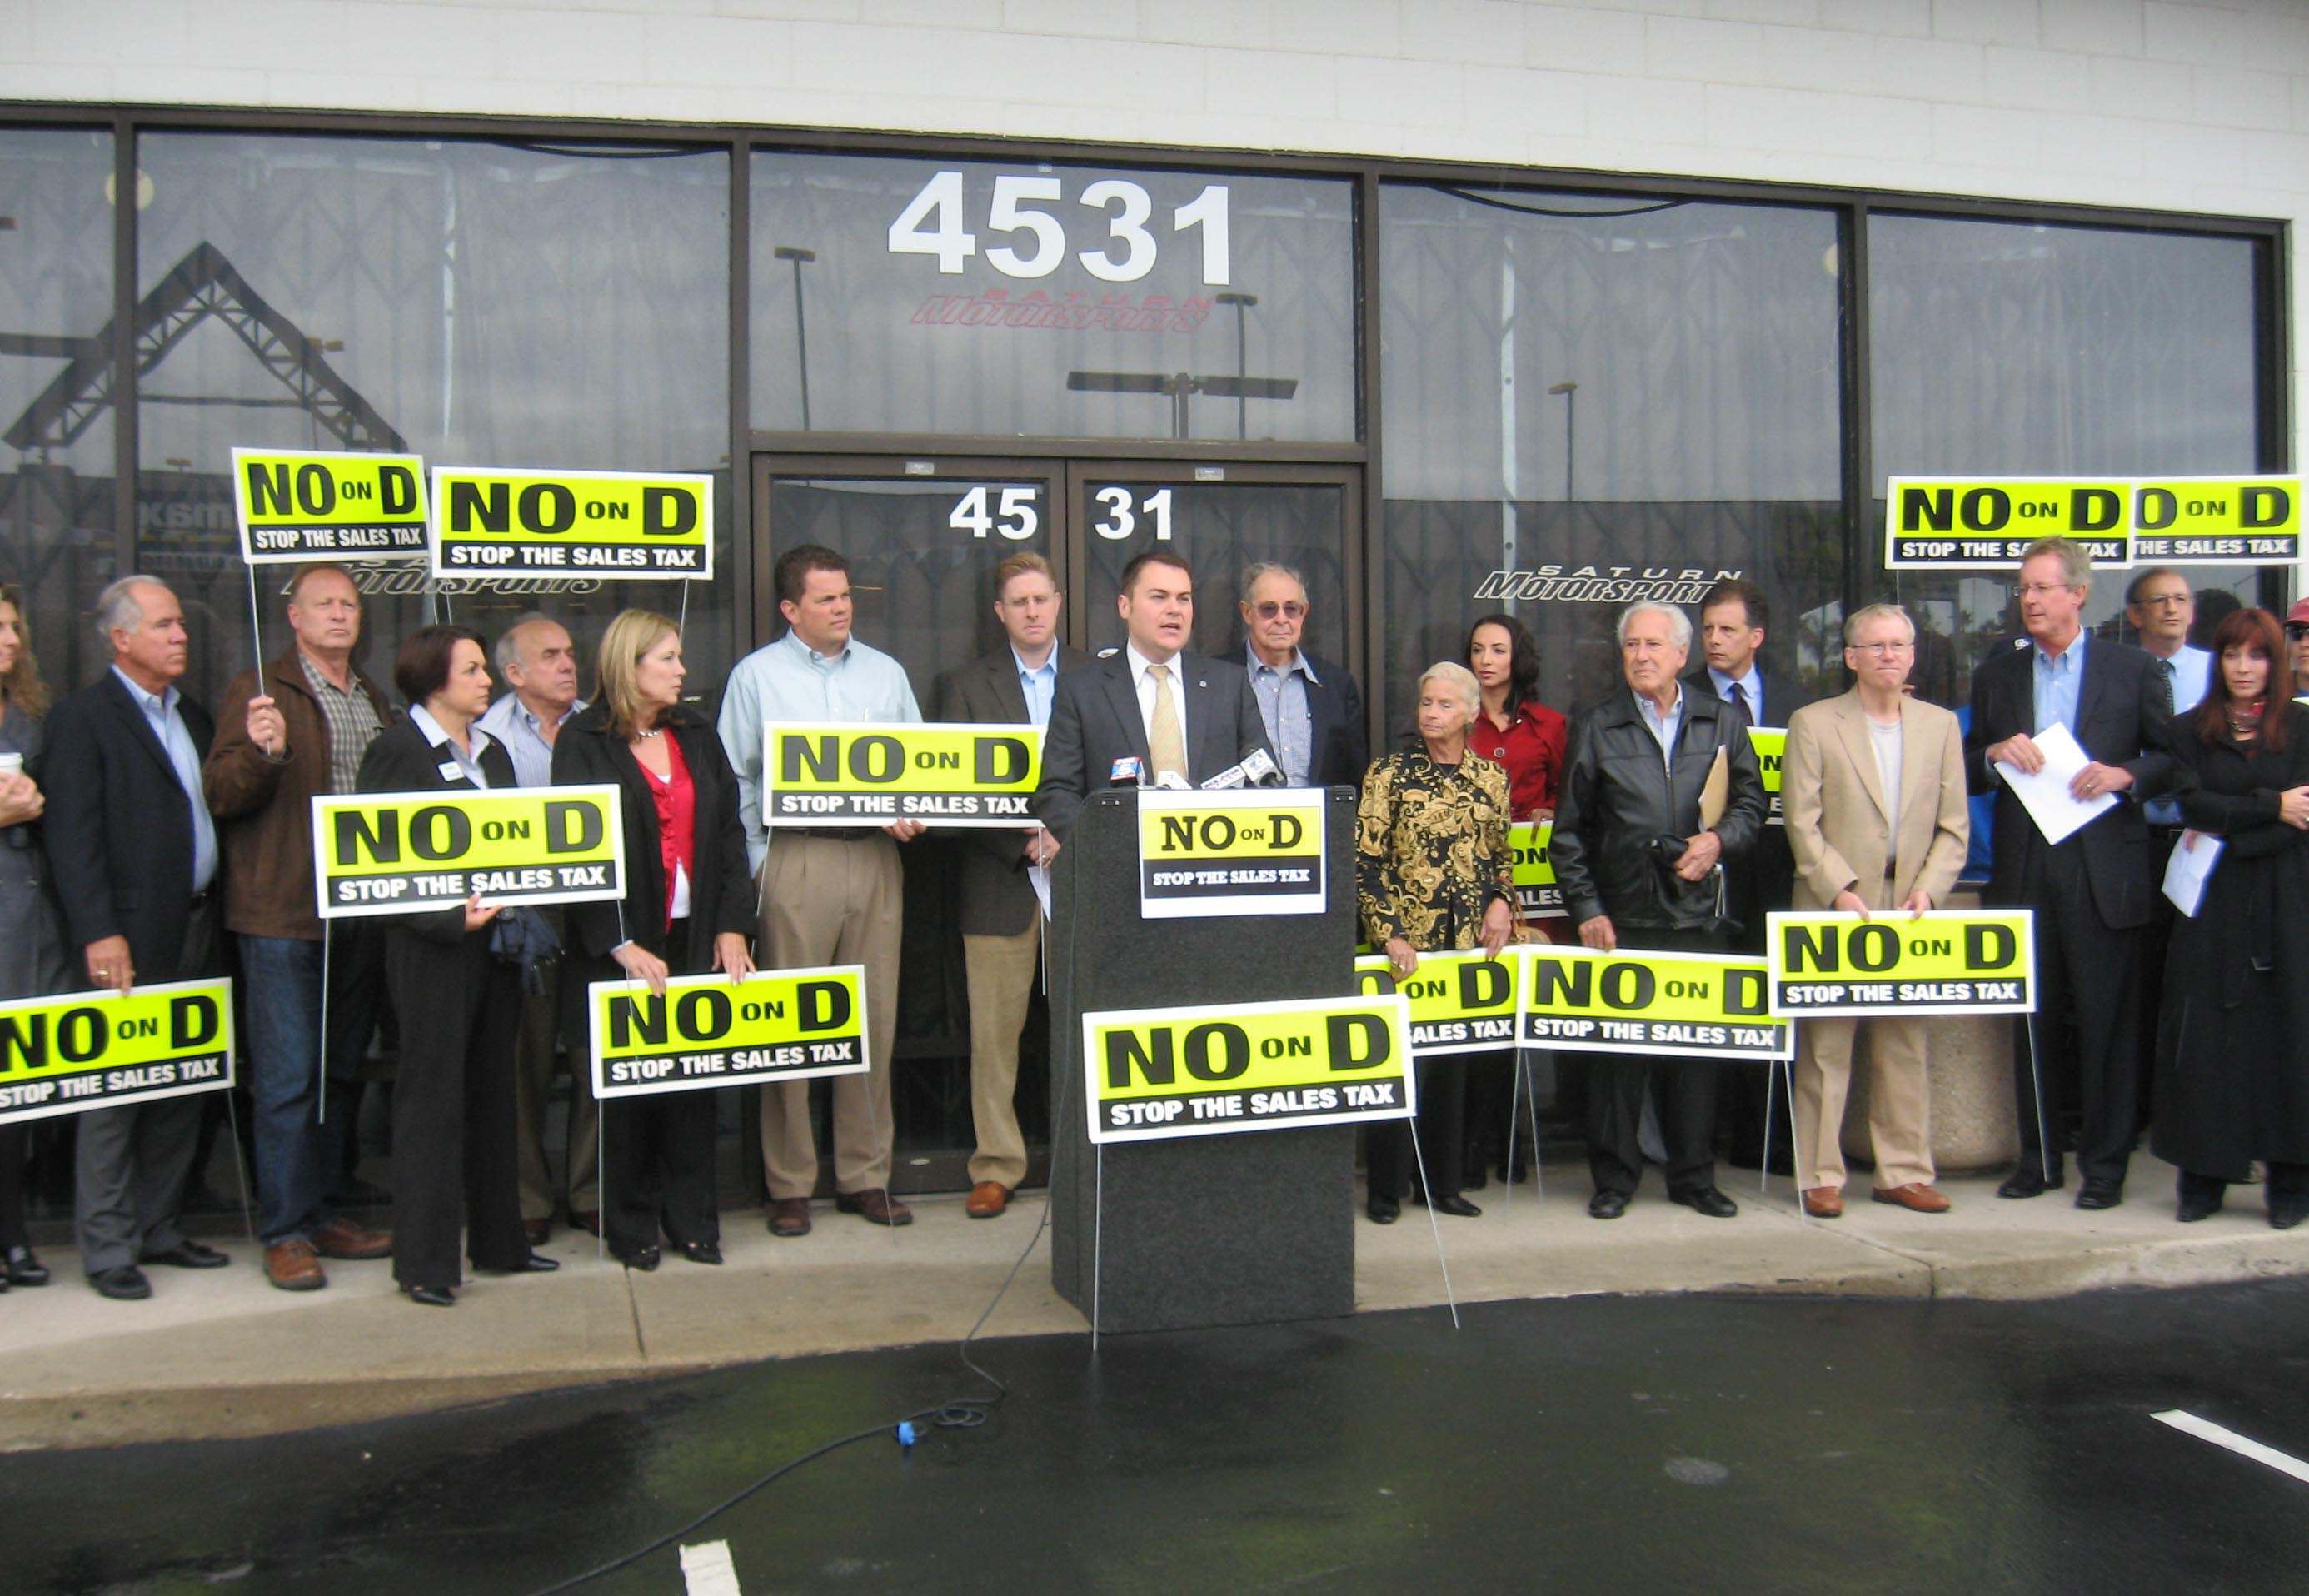 No On D Business Support News Conference, October 6, 2010